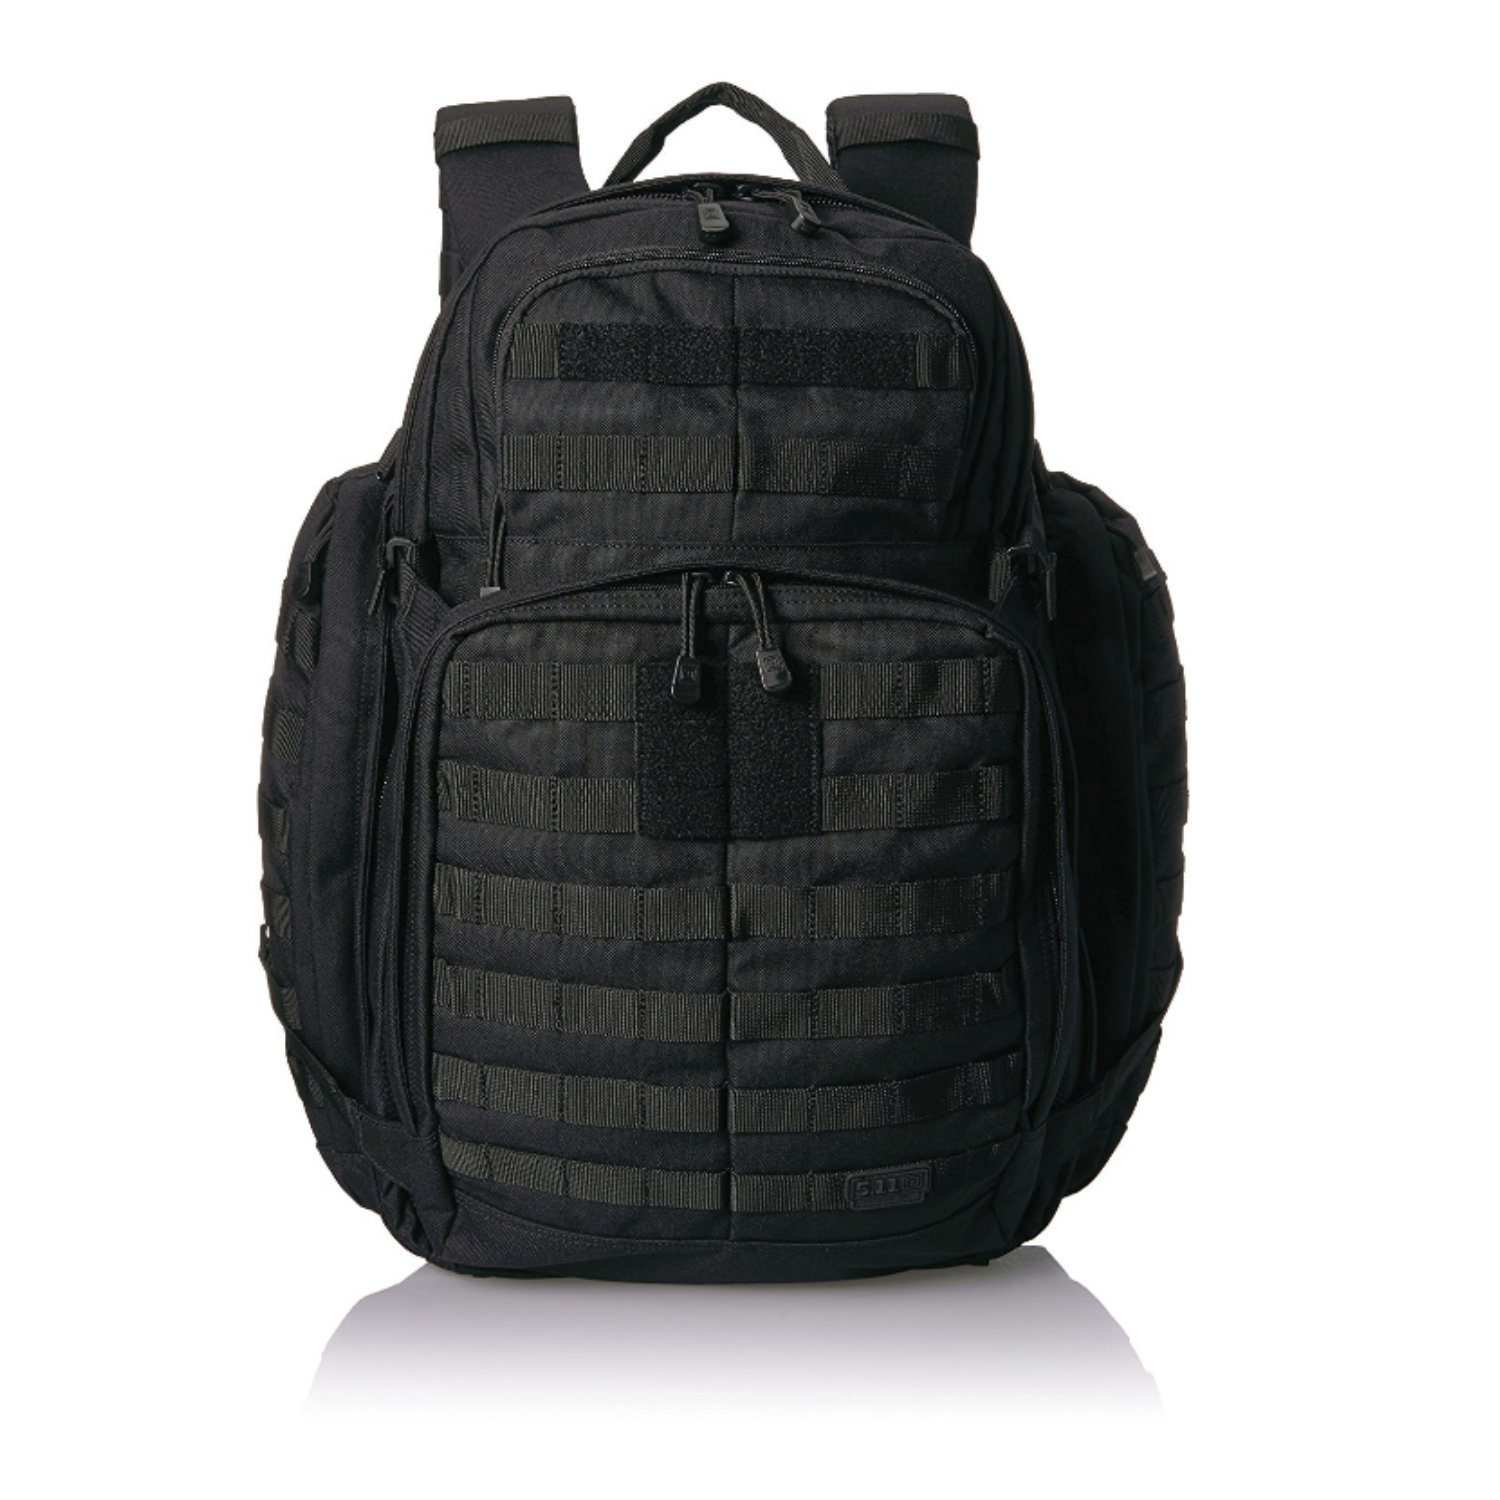 Rush 72 Backpack - 5.11 Tactical